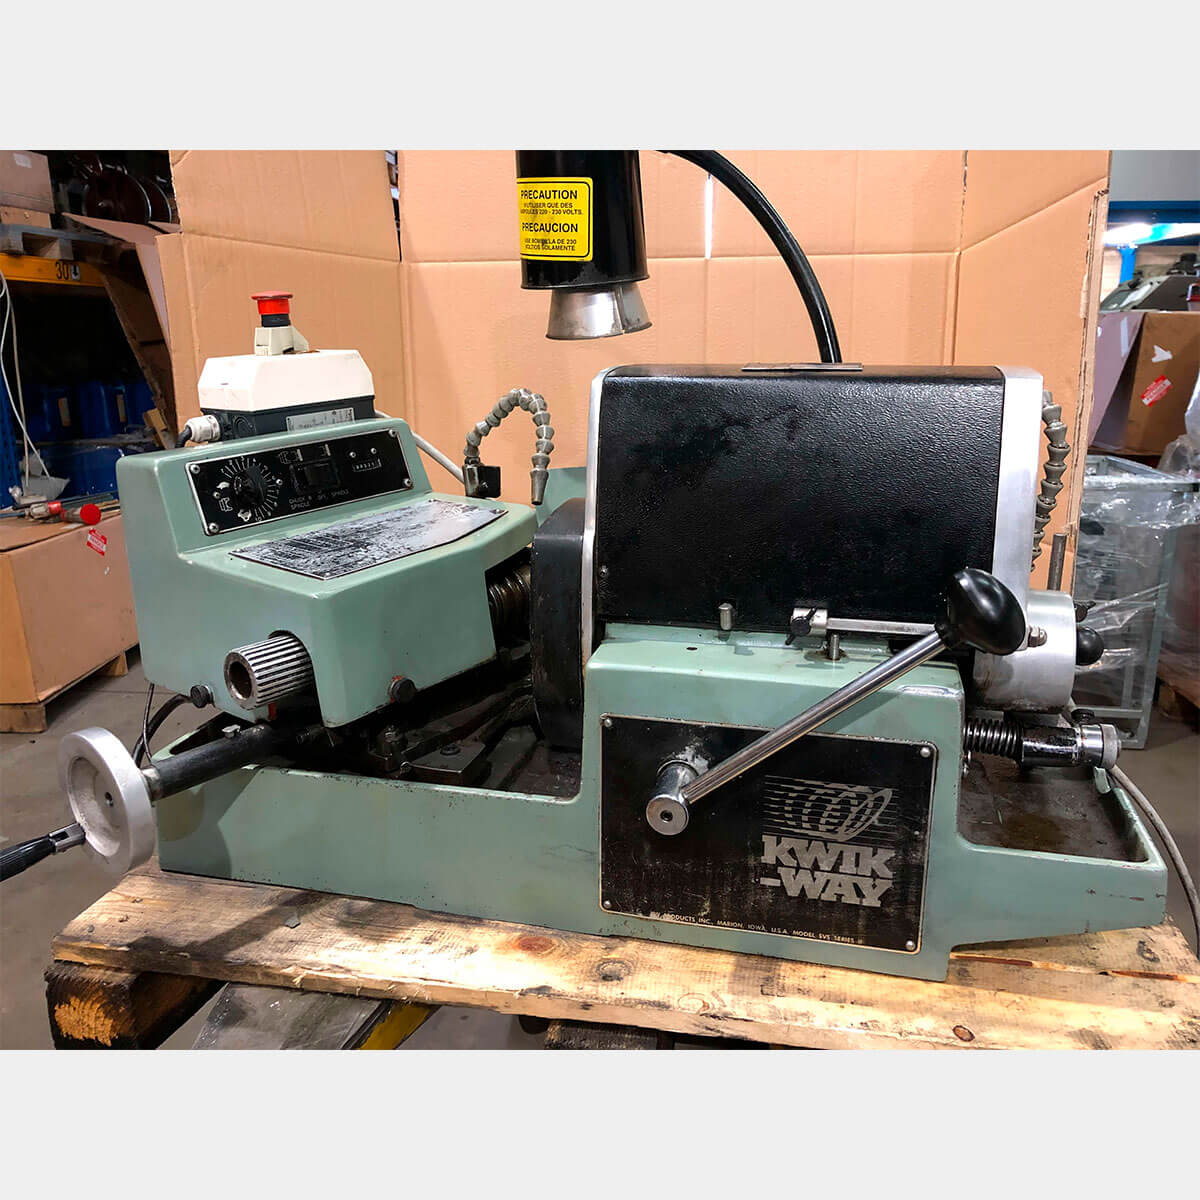 MU741 - KWIK-WAY SVSD Valve Grinding Machine